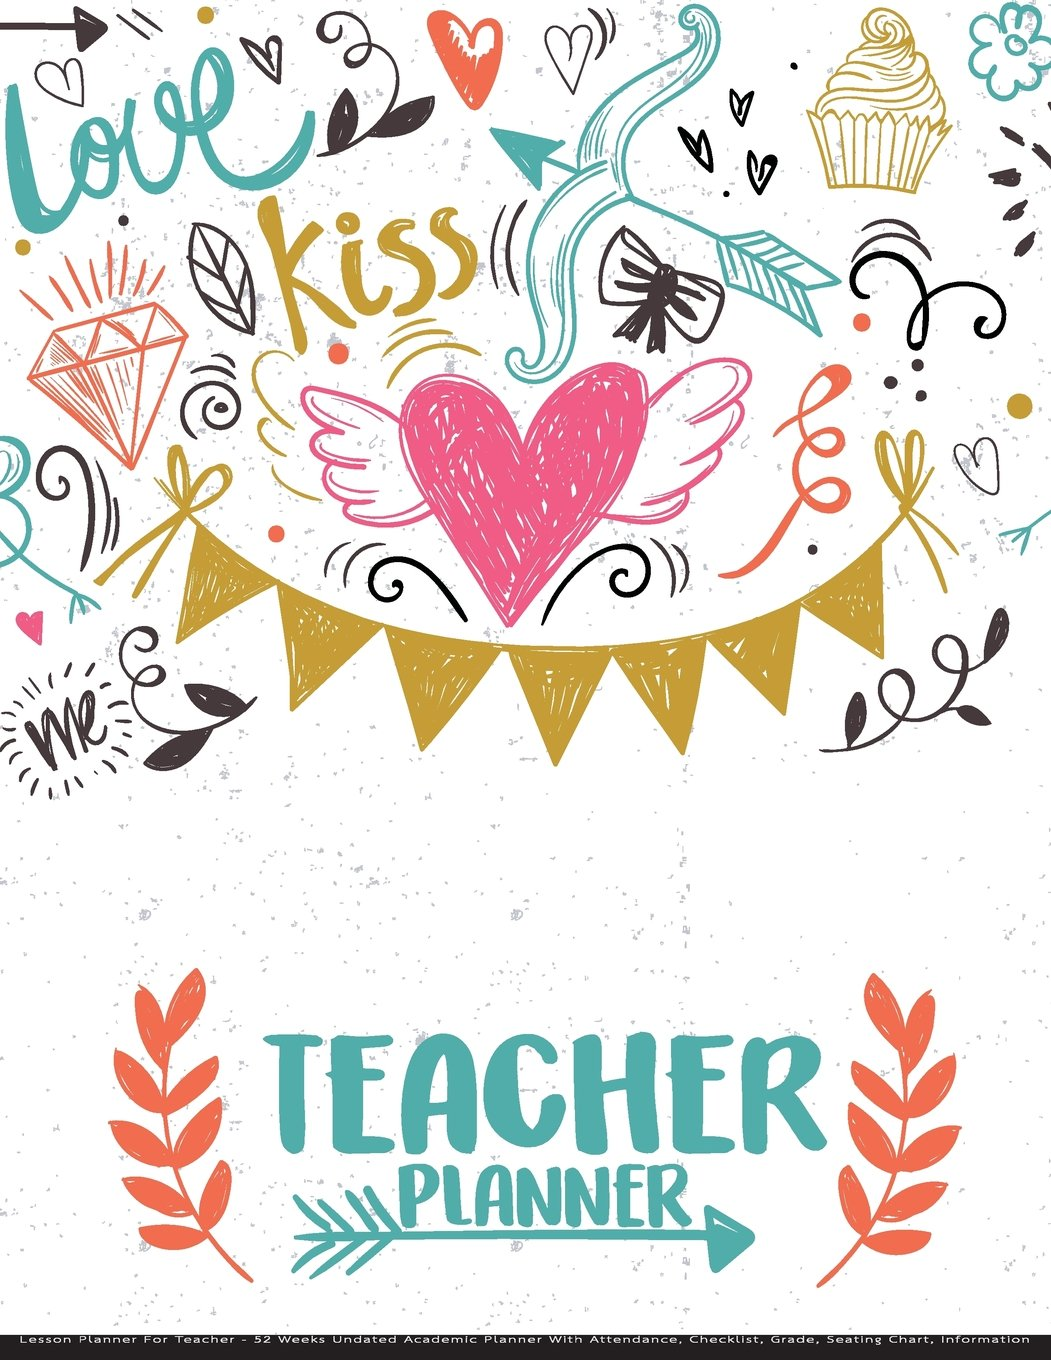 teacher planner lesson planner for teacher 52 weeks undated